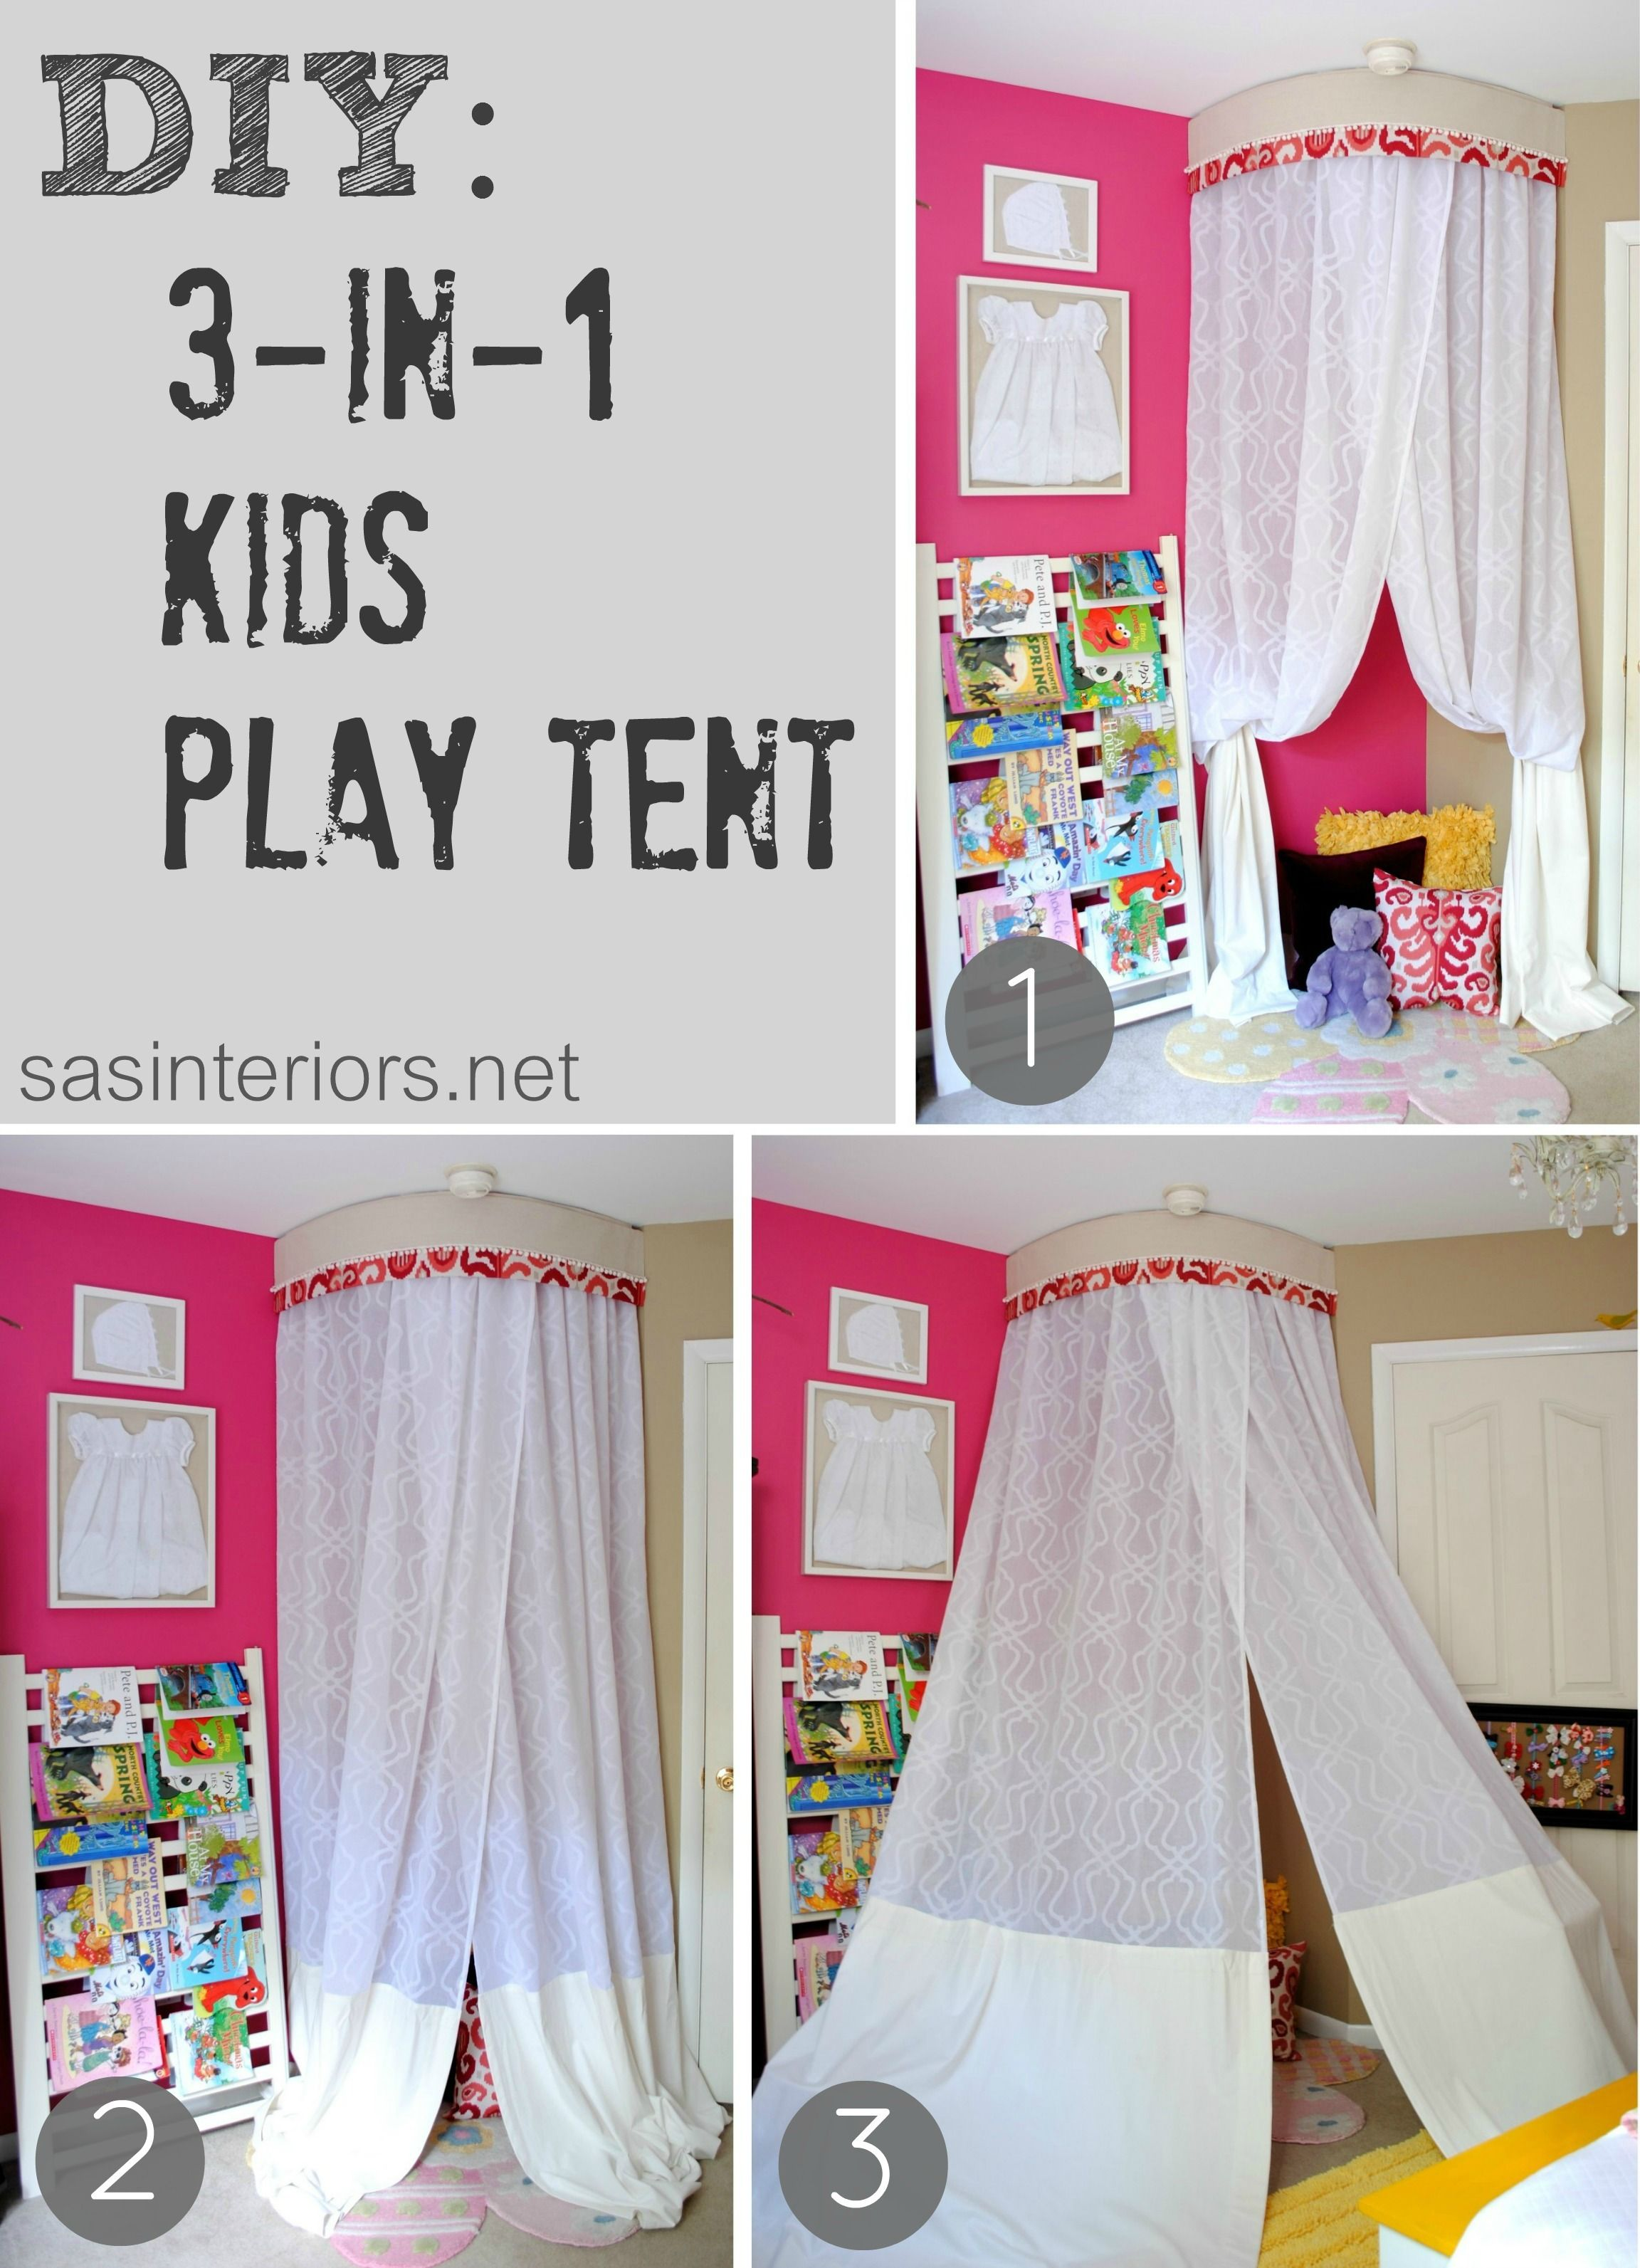 10 creative reading nooks for kids | Tents, Plays and Room